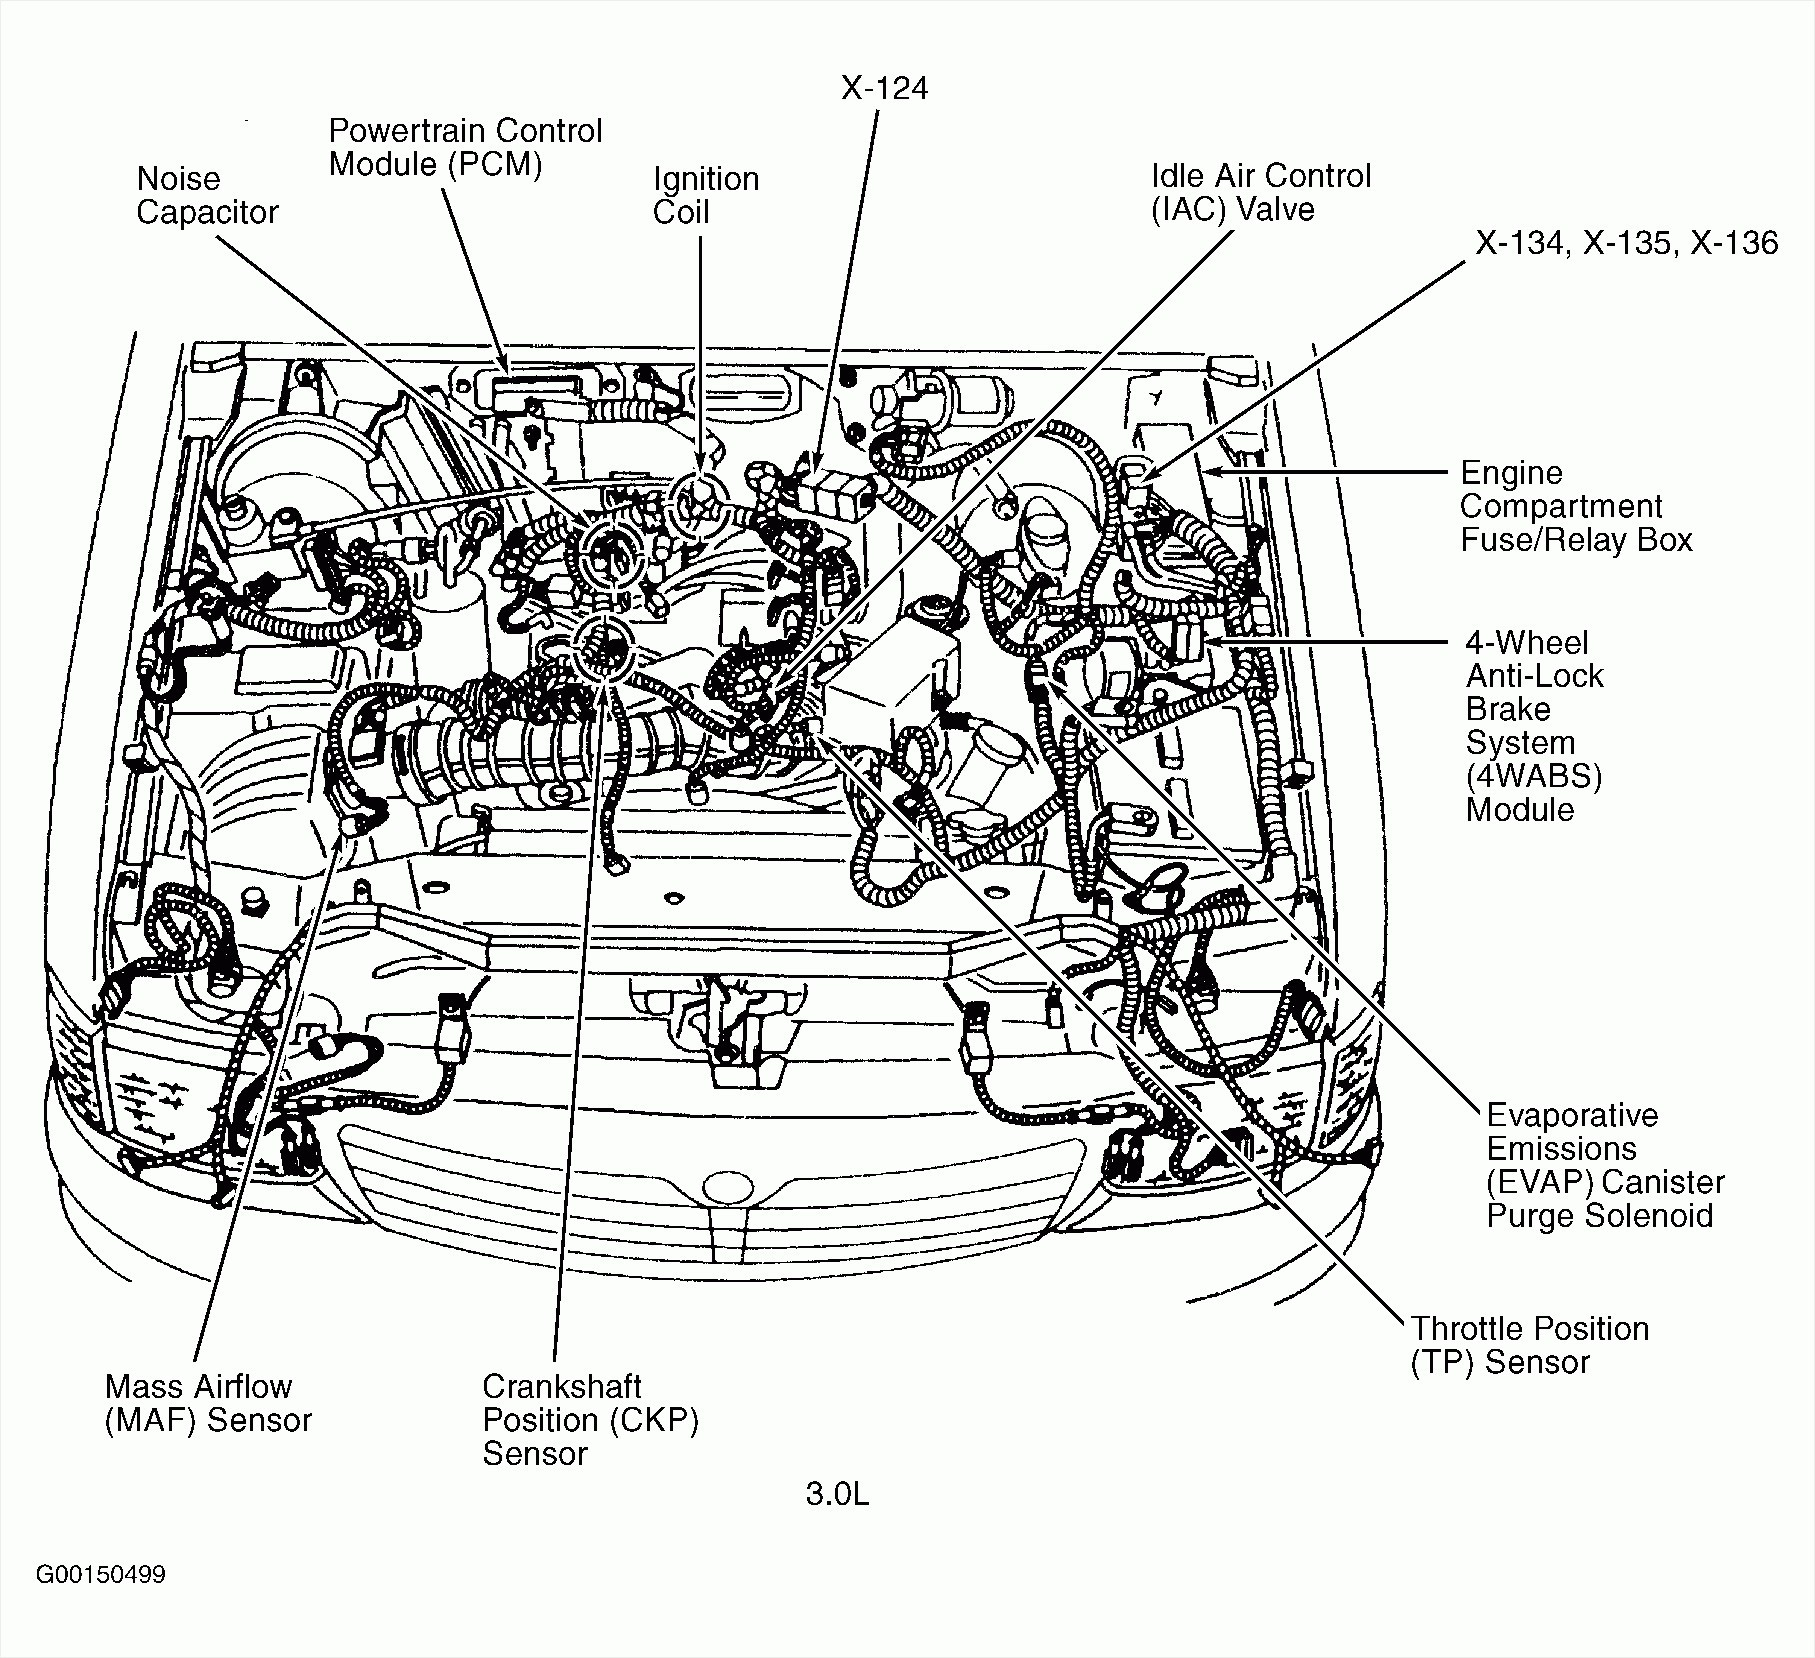 4 cylinder engine diagram wiring diagrams best 1995 6 cylinder engine diagram wiring diagram data jeep grand cherokee 4 0 engine diagram 4 cylinder engine diagram